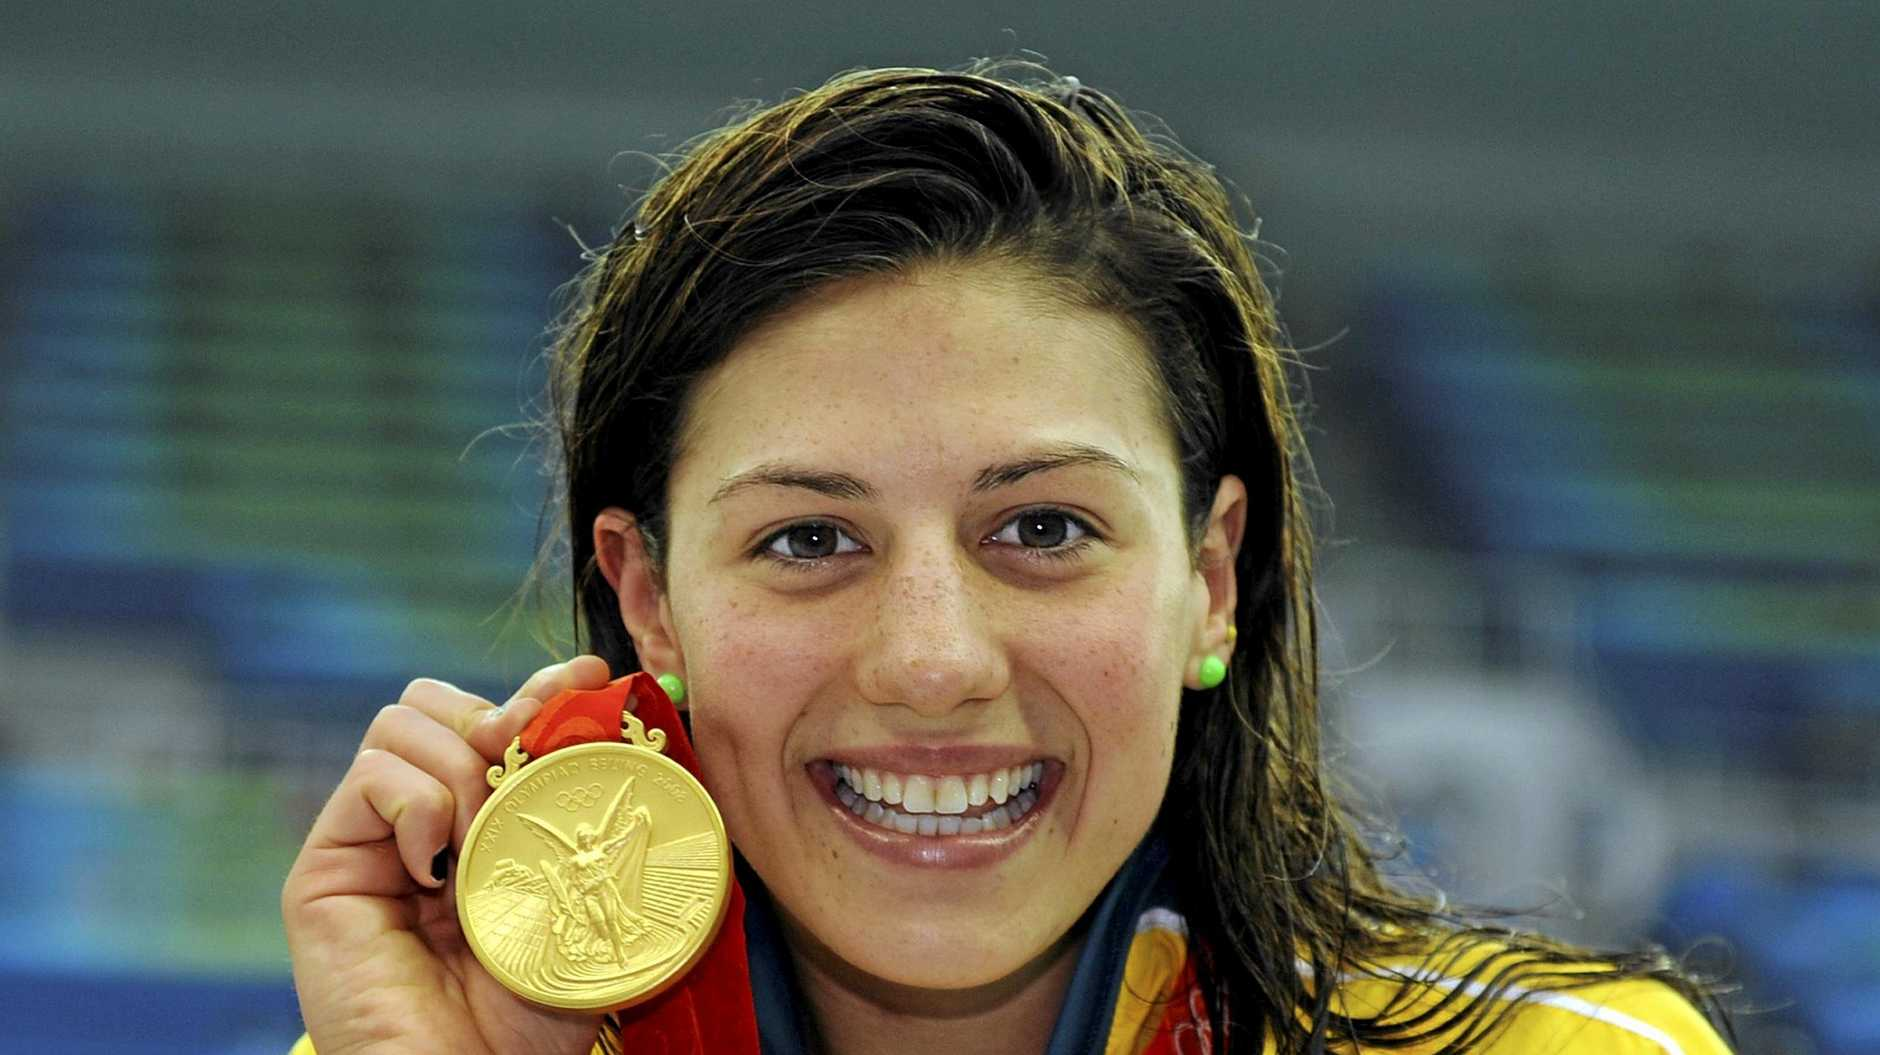 Stephanie Rice with her gold medal after winning the 200m IM at the 2008 Beijing Olympic Games.